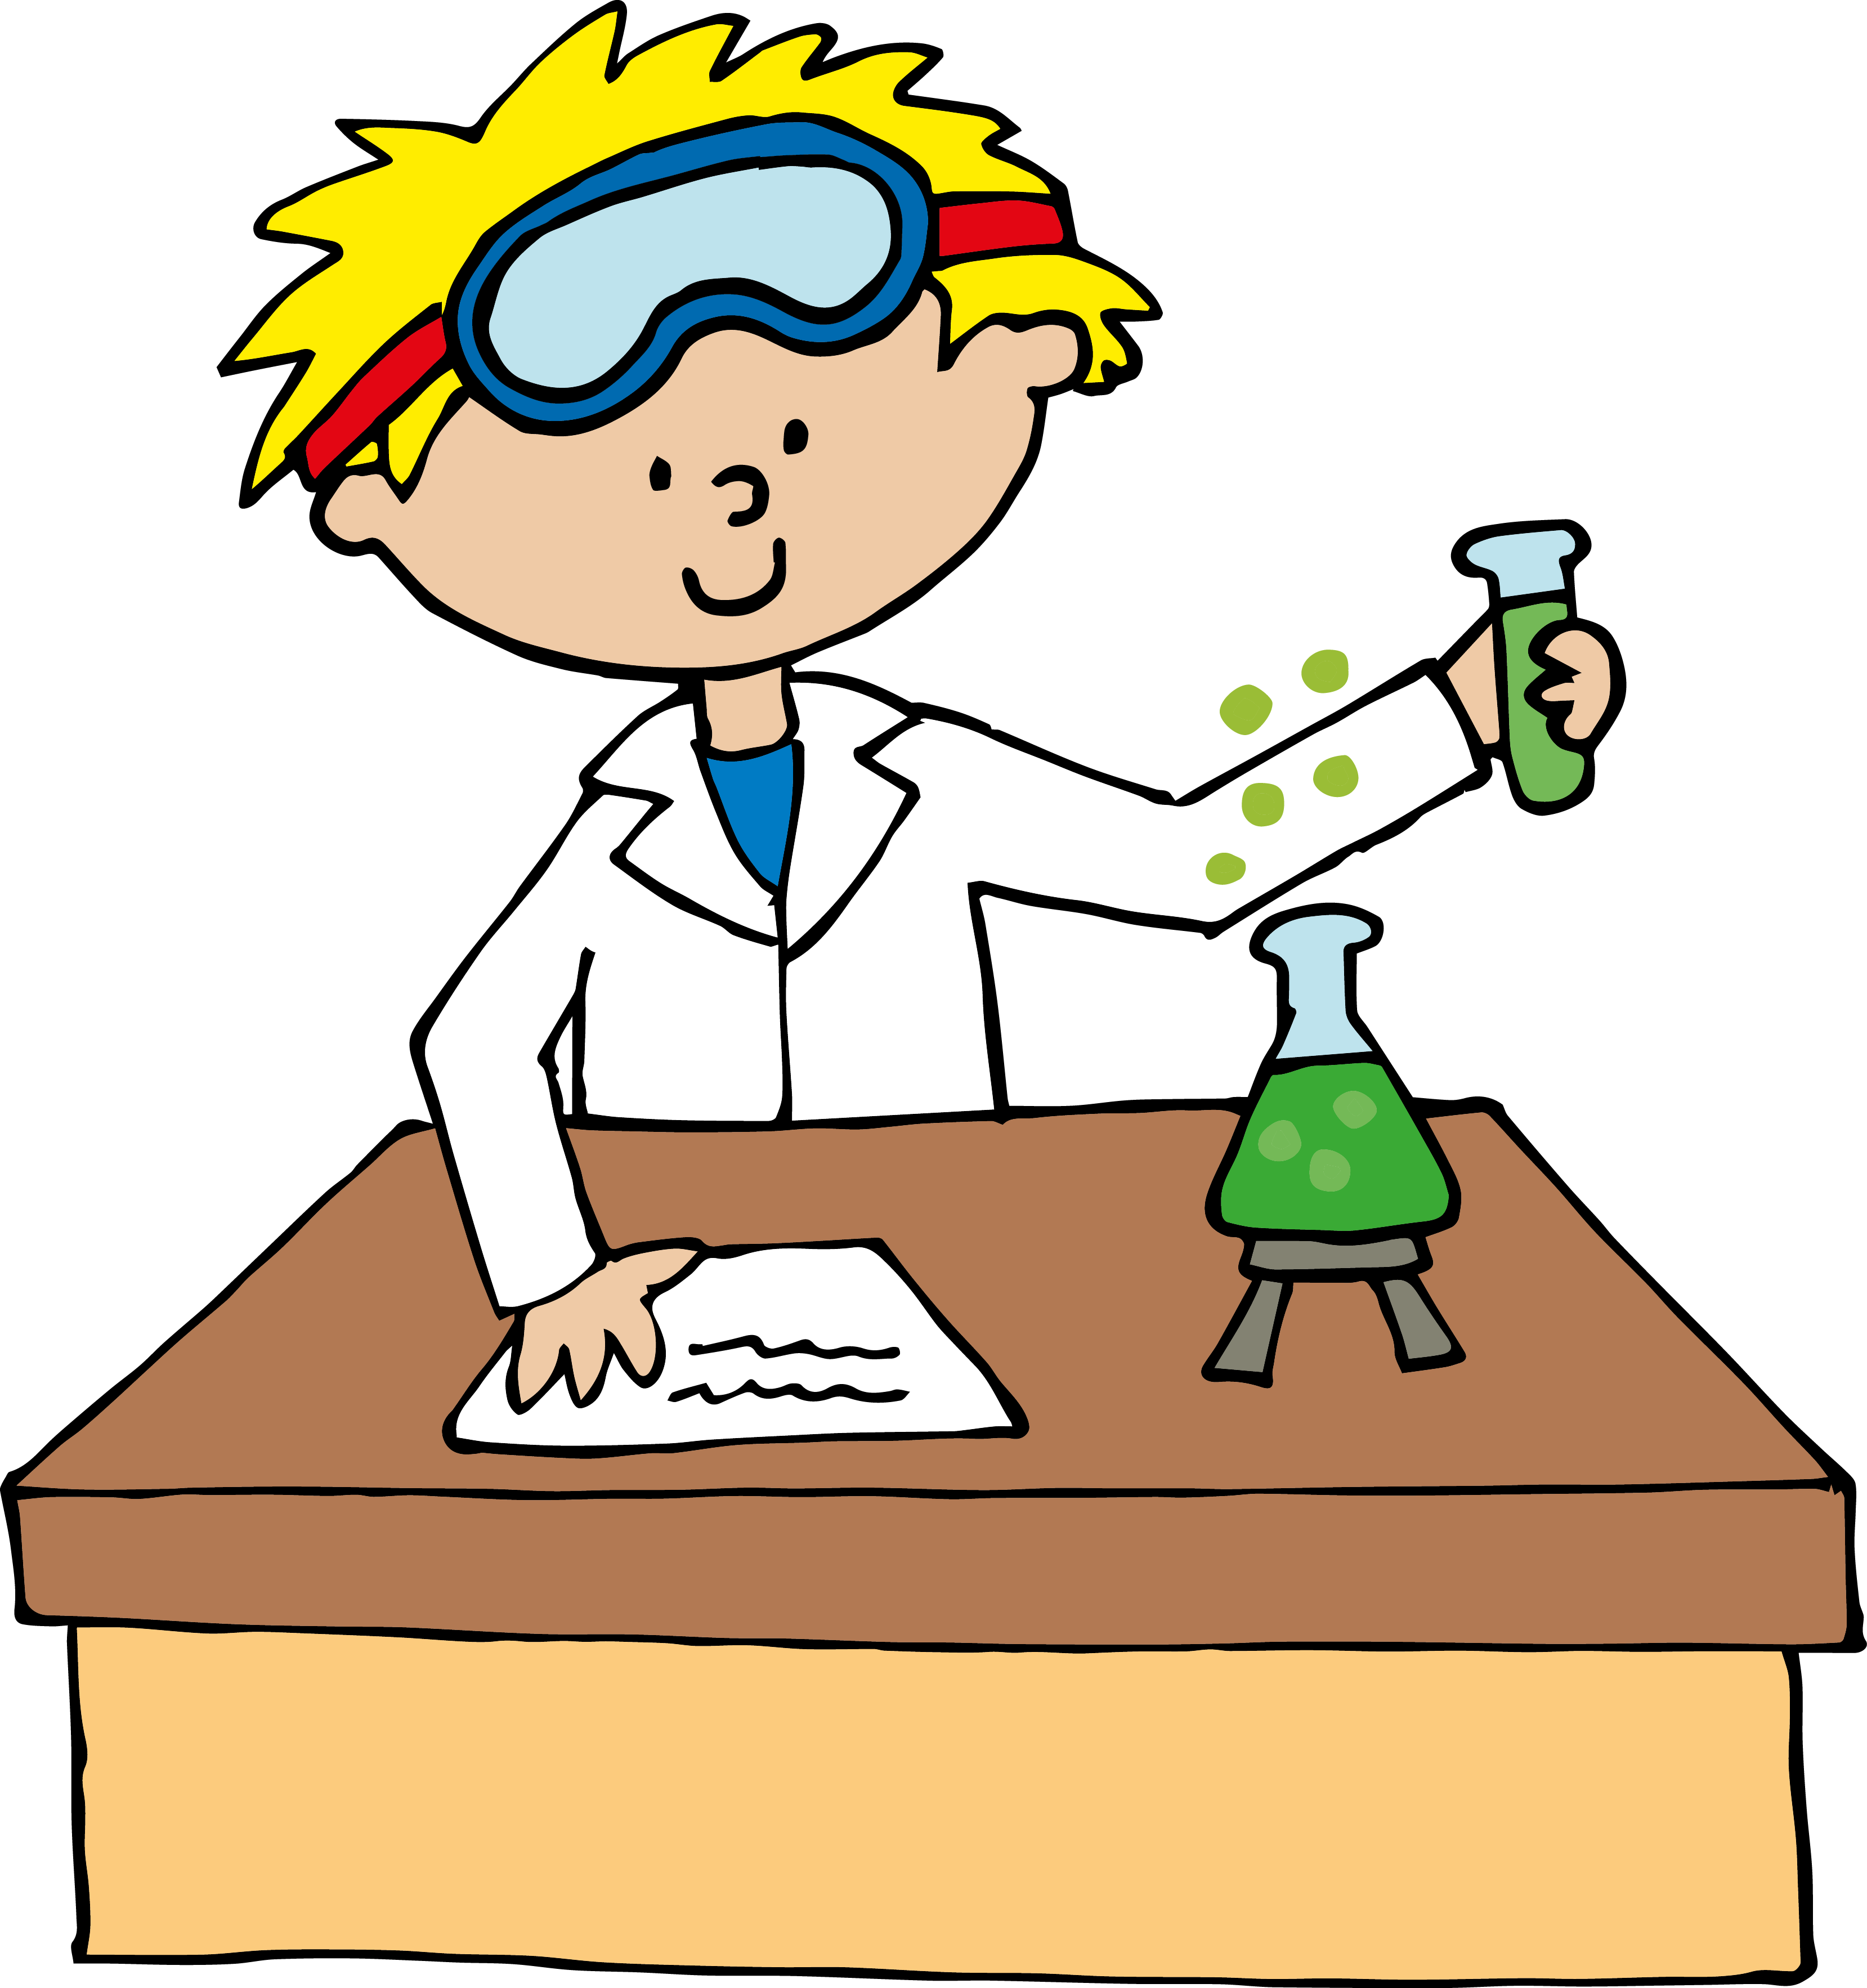 Free science clip art clipart 3